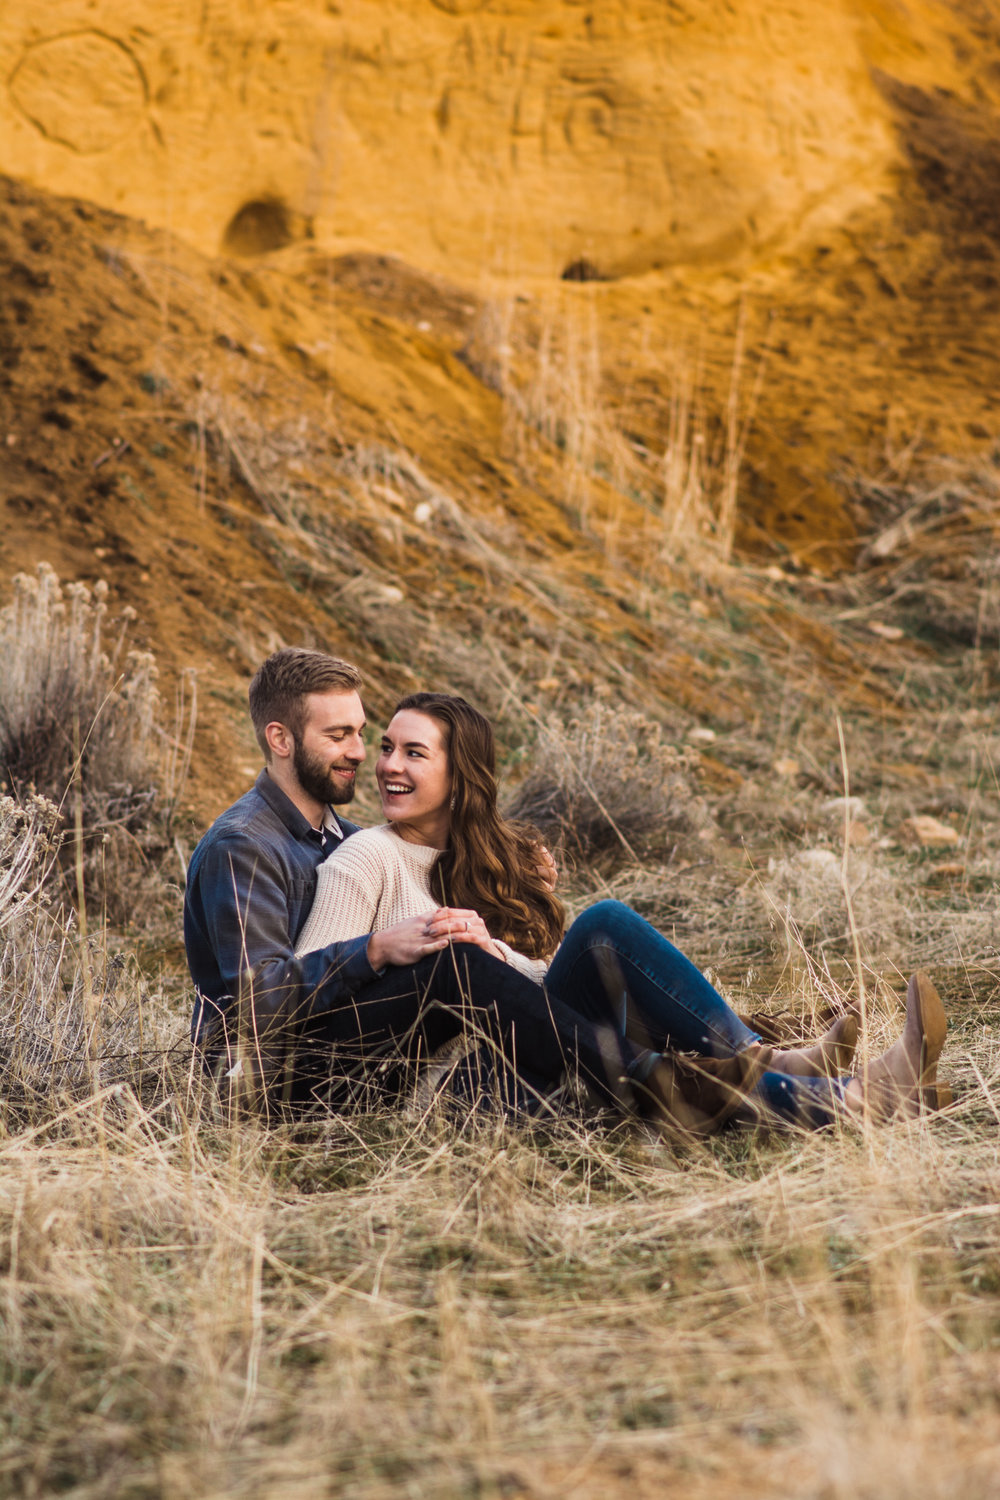 Boise Wedding Photographer, Idaho Wedding Photographer, Boise Senior Photographer, Idaho Engagement Photographer, best Boise Photographer, Photographers in Boise, Idaho Graphic Designer, Boise Graphic Designer, McCall, Eagle, Meridian, Weiser, Social Media Manager, Boise family photographer